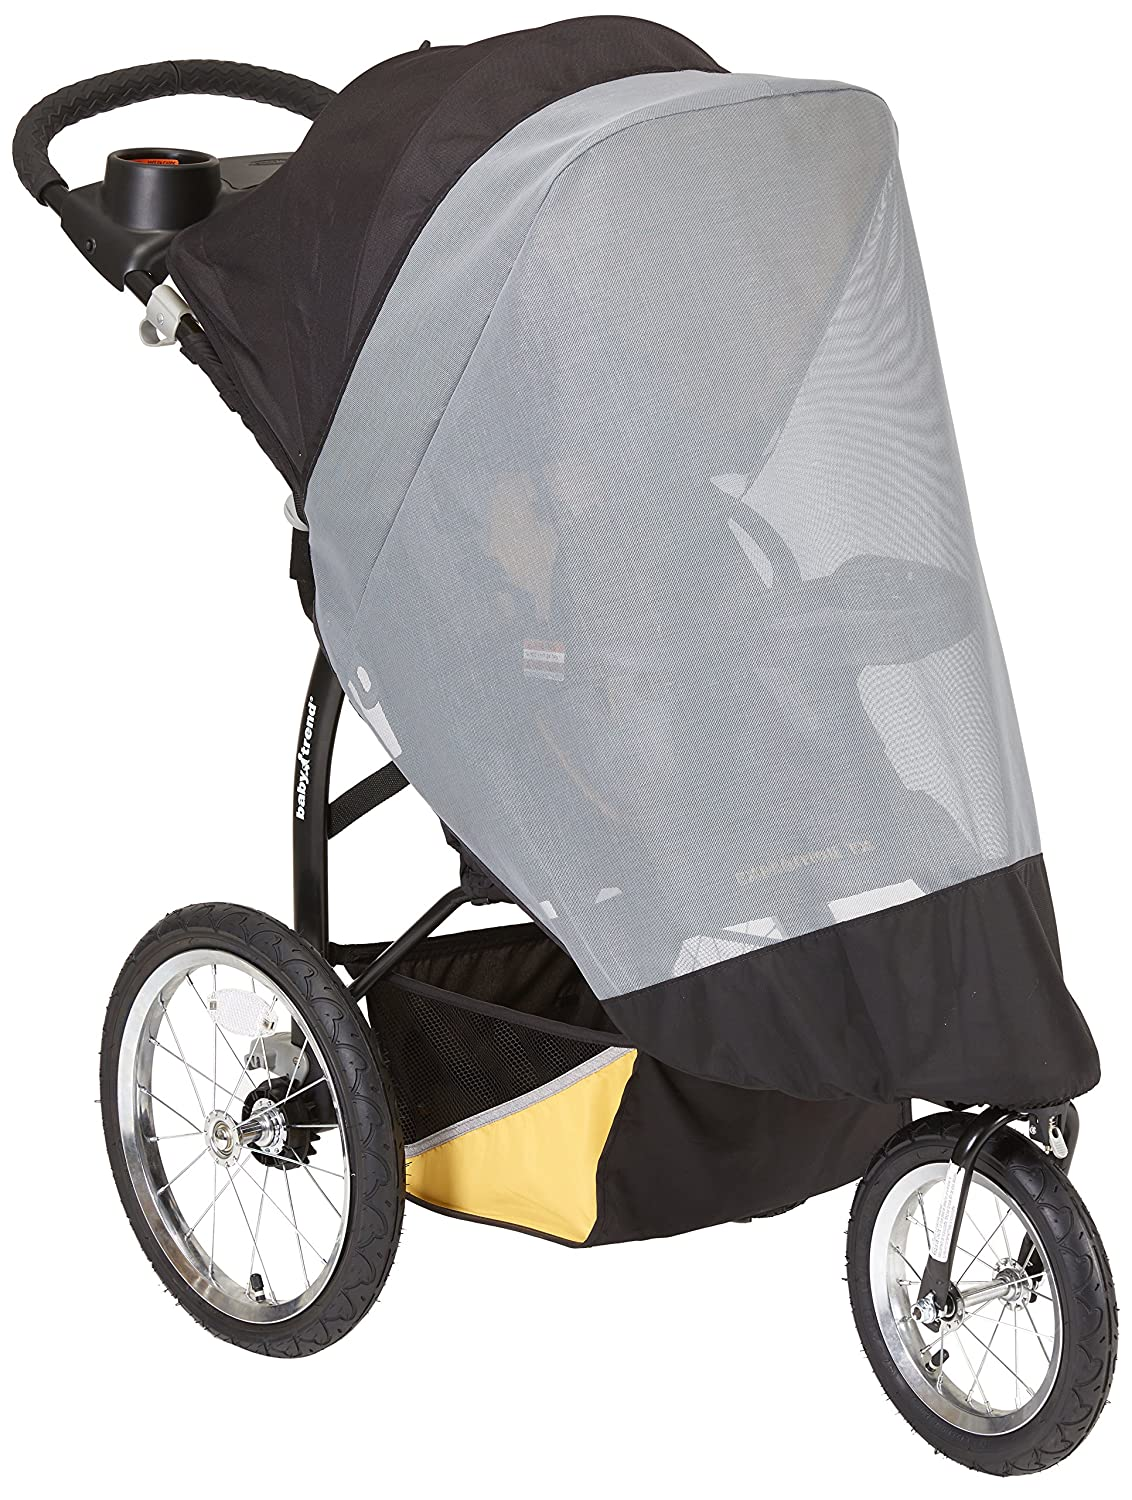 Sashas See Me See You Series Sun, Wind and Insect Cover for Baby Trend Expedition Jogger BT - 1